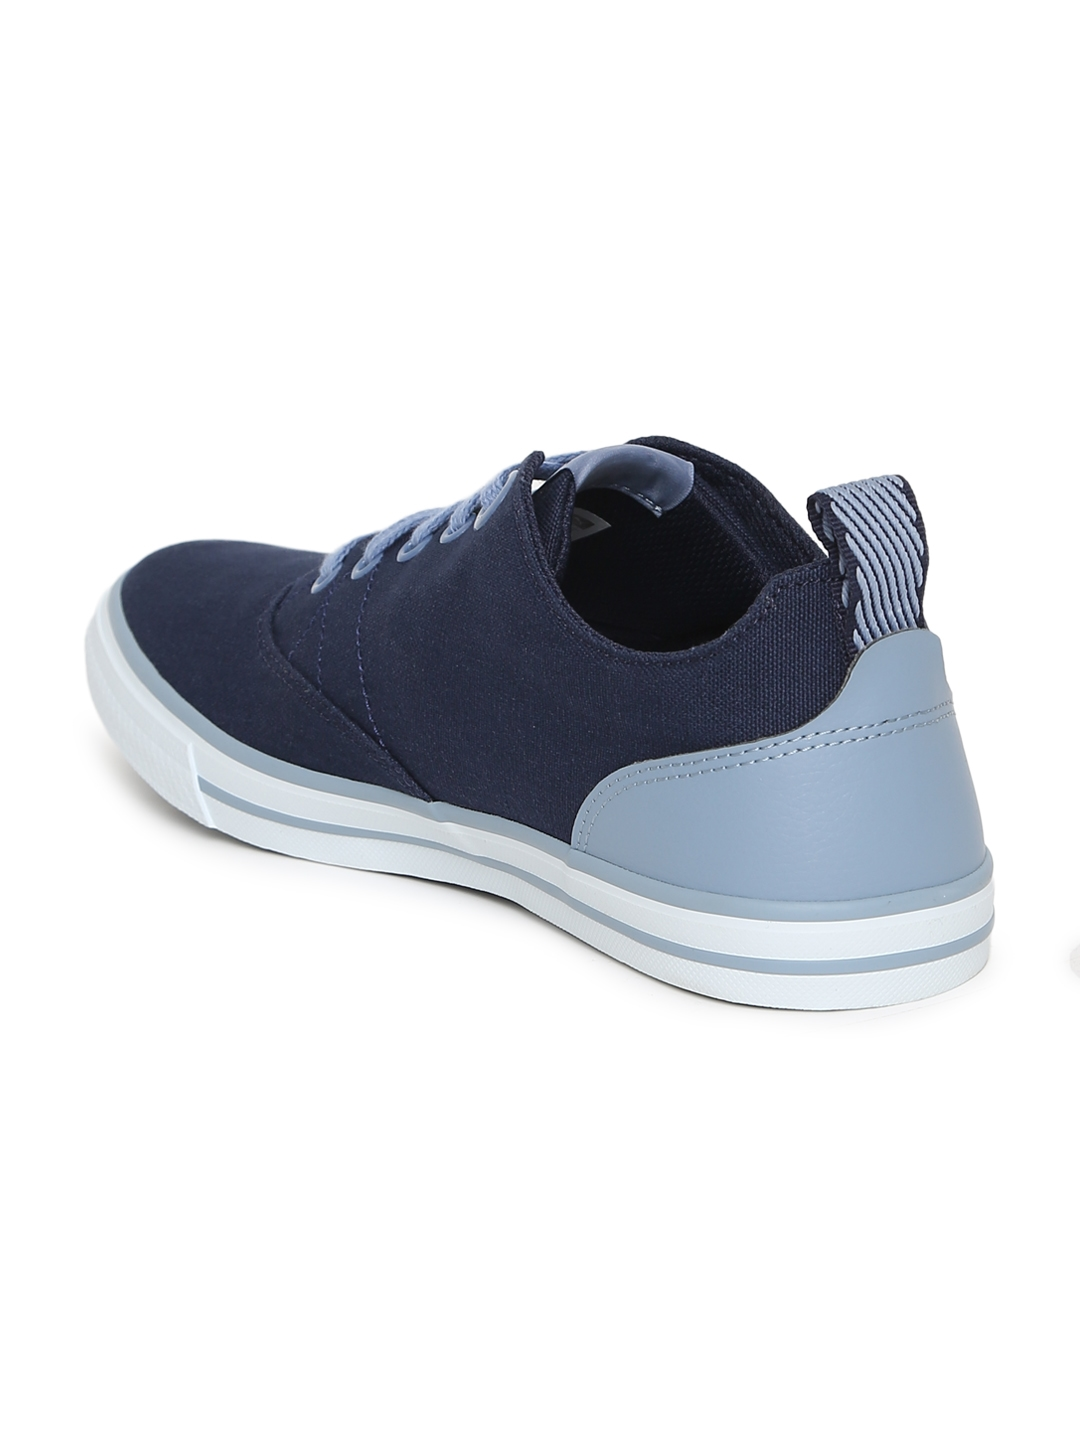 1d174fa7130126 Buy Puma Men Blue Slyde NU IDP Slip On Sneakers - Casual Shoes for ...